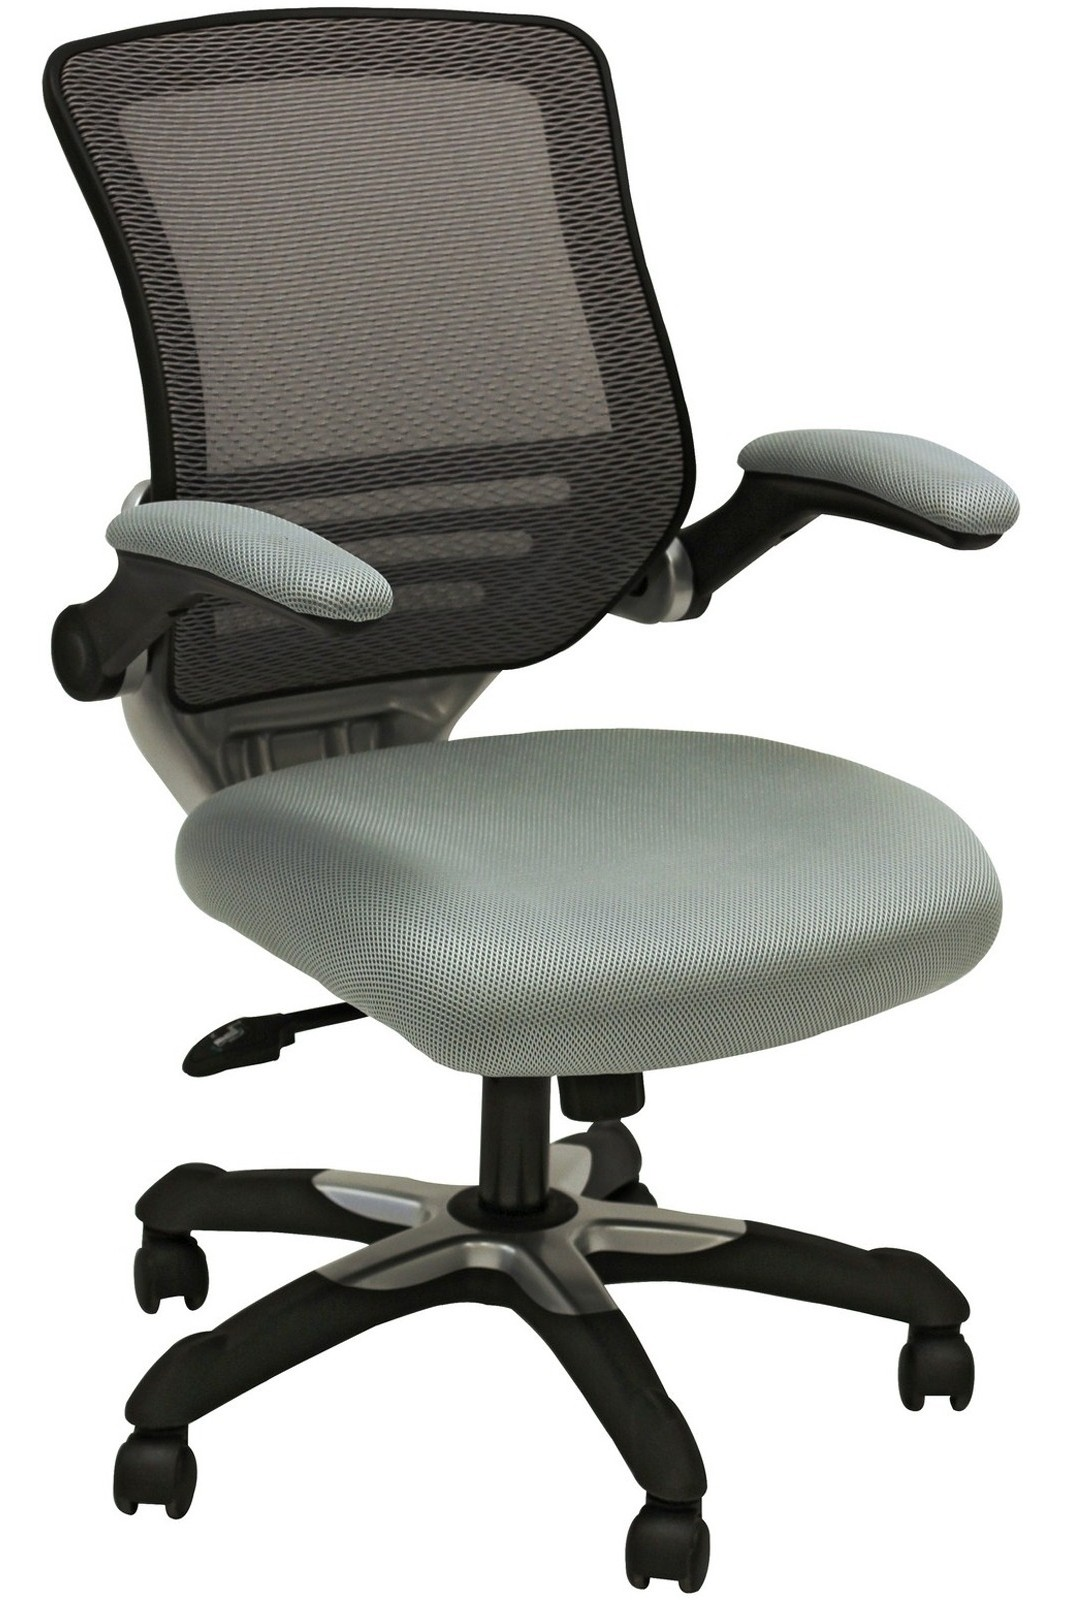 Edge Office Chair With Gray Mesh Fabric Seat From Renegade EEI 594 Colema